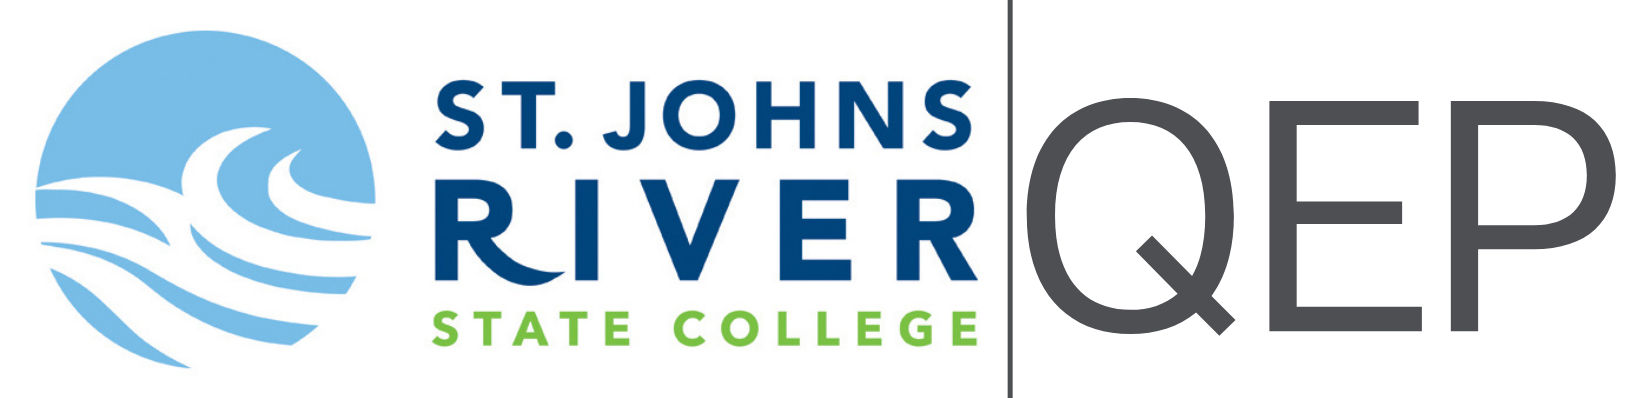 St. Johns River State College QEP